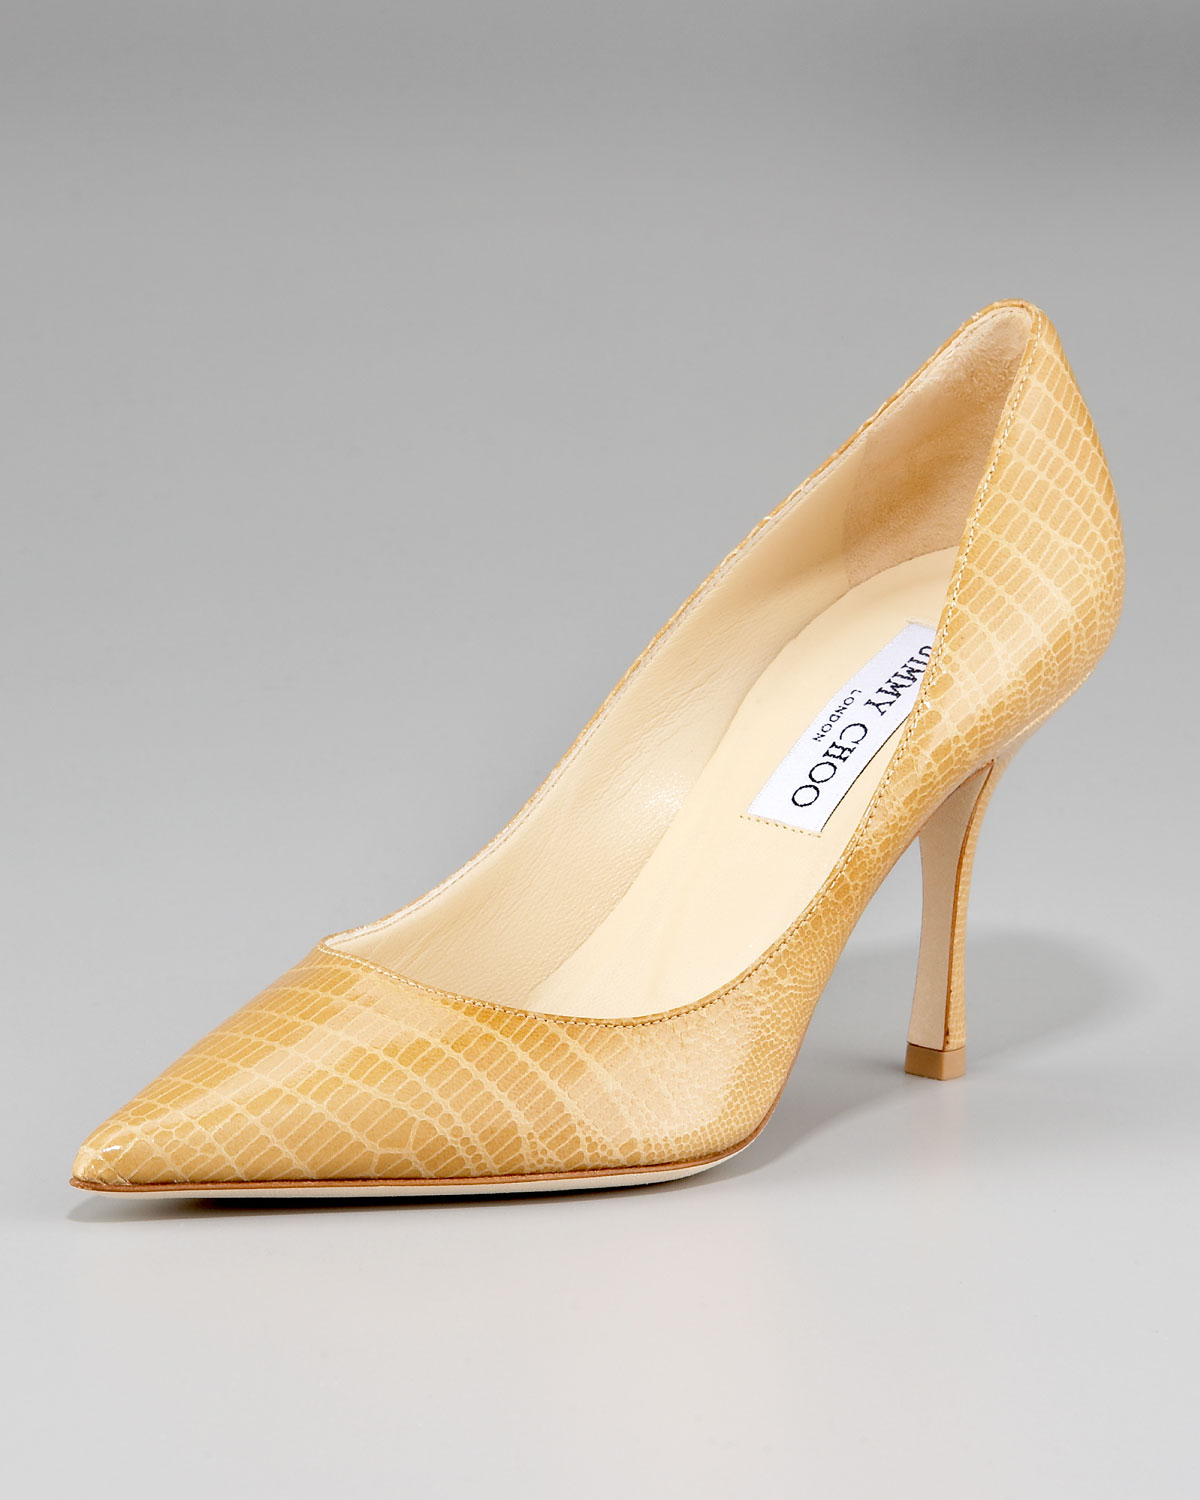 953df854dd70 Lyst - Jimmy Choo Lizard-print Pointed Pump in Natural